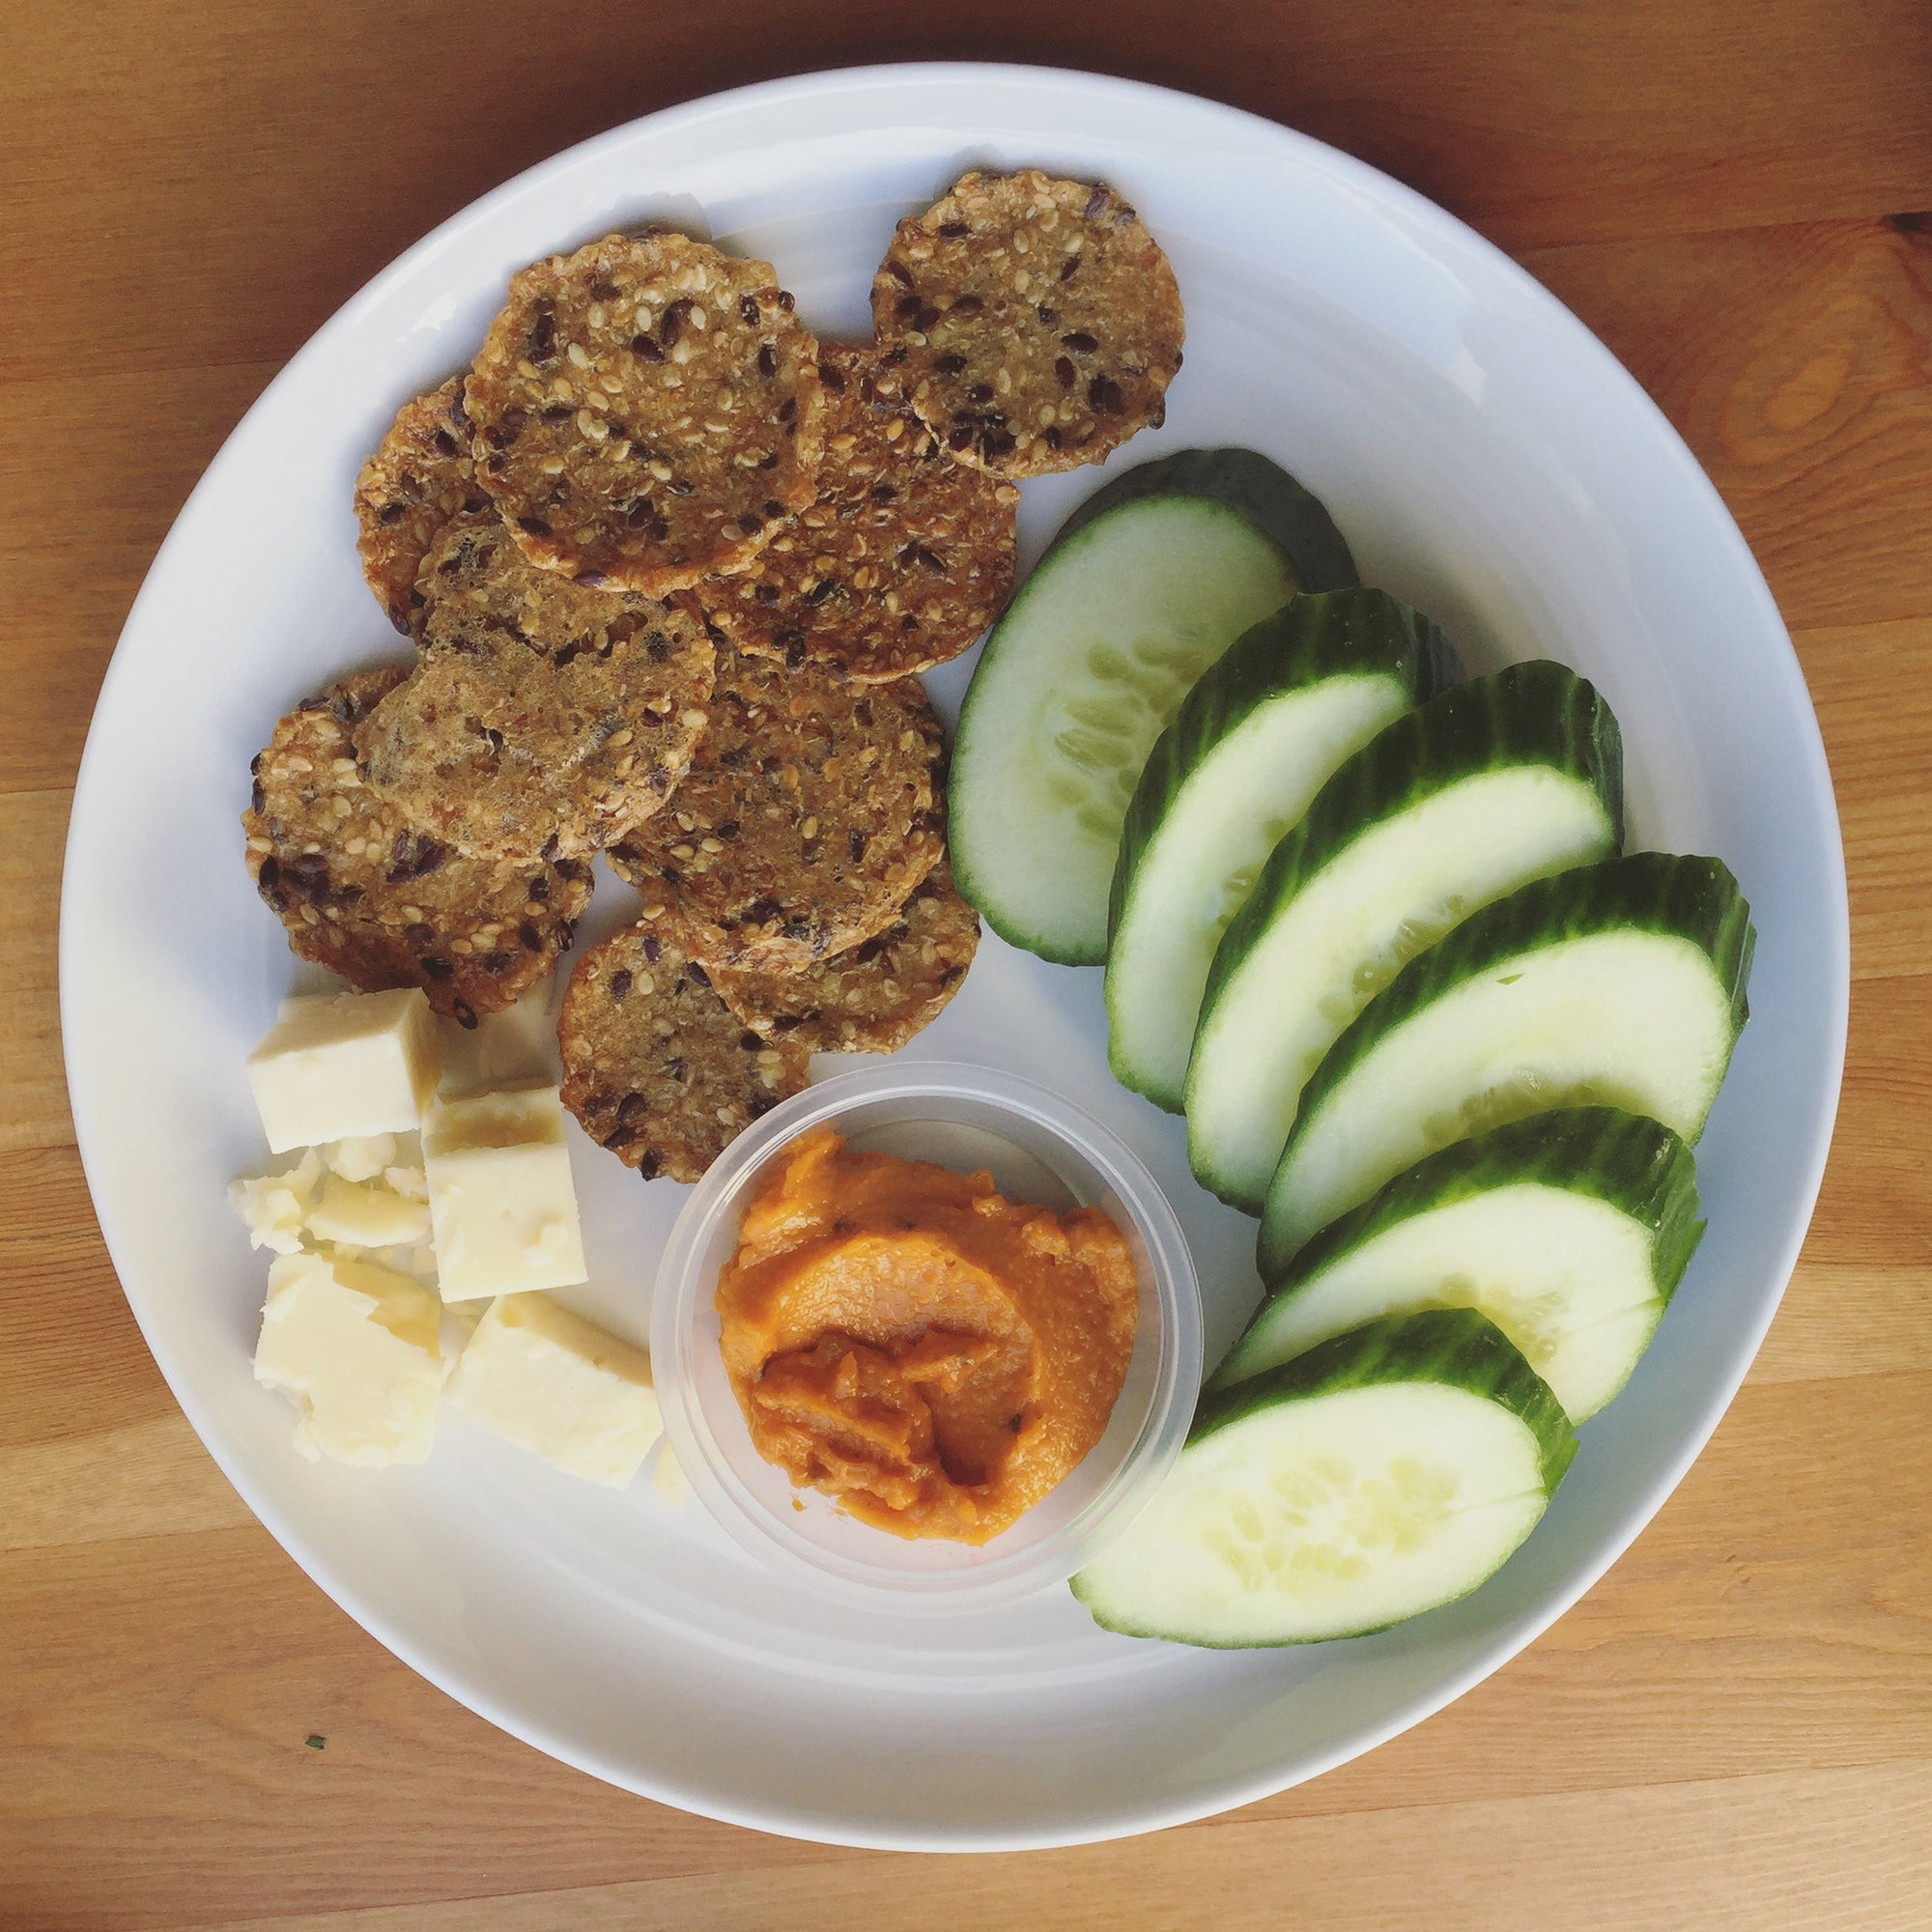 Snack Box -Mary's Gone Crackers (GF), Cucumbers & Aged Cheddar